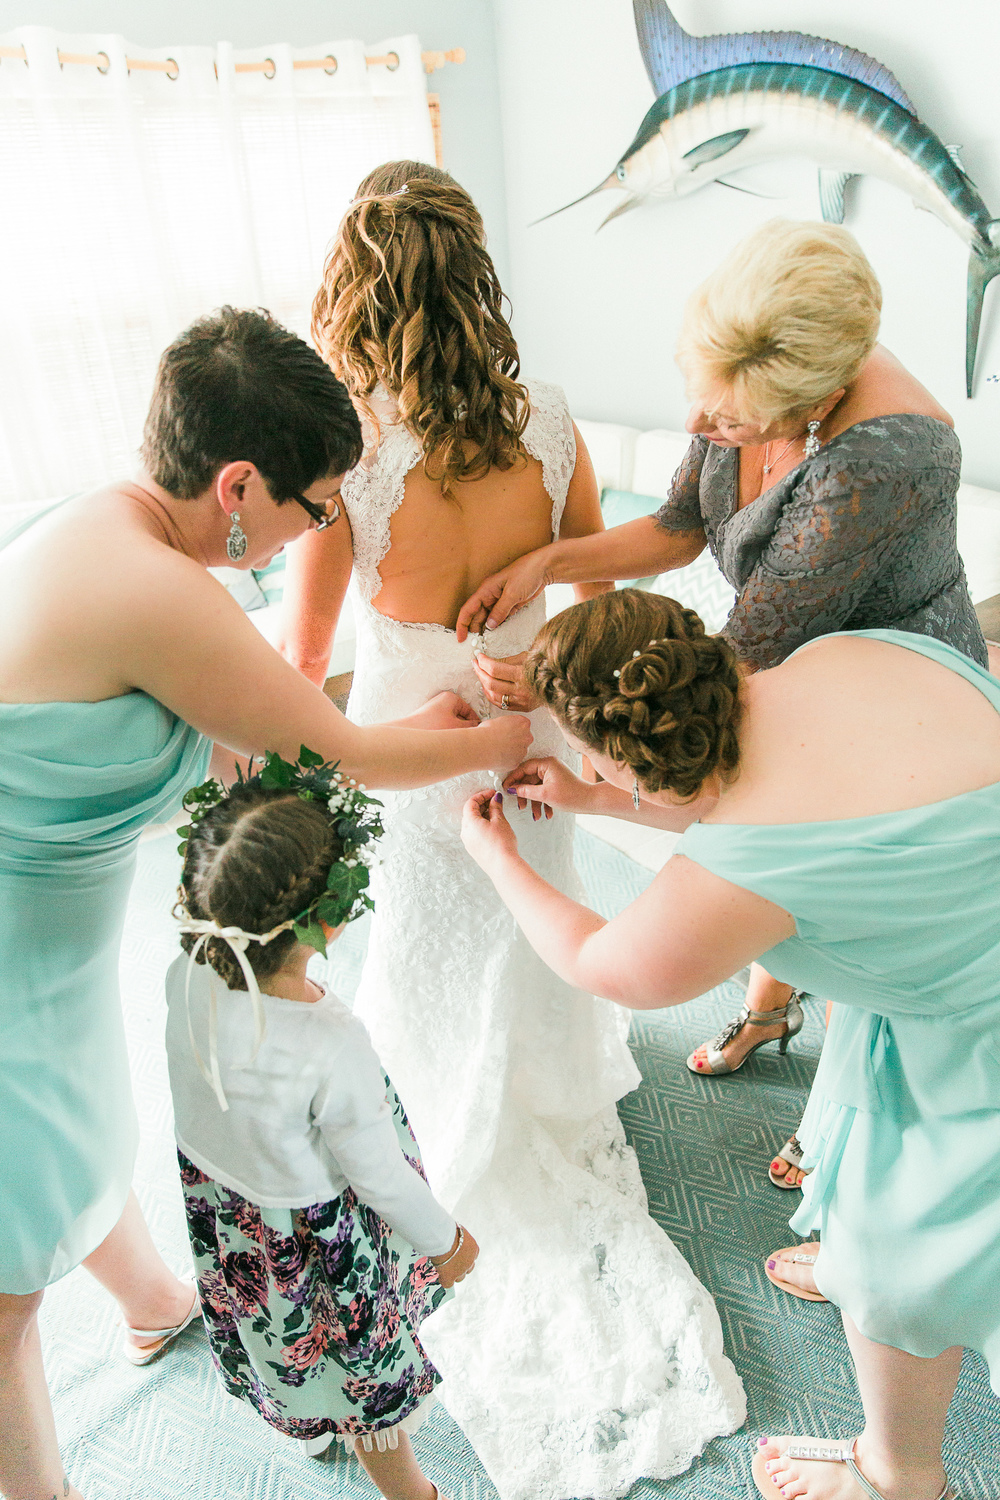 Teamwork During Bridal Preparations